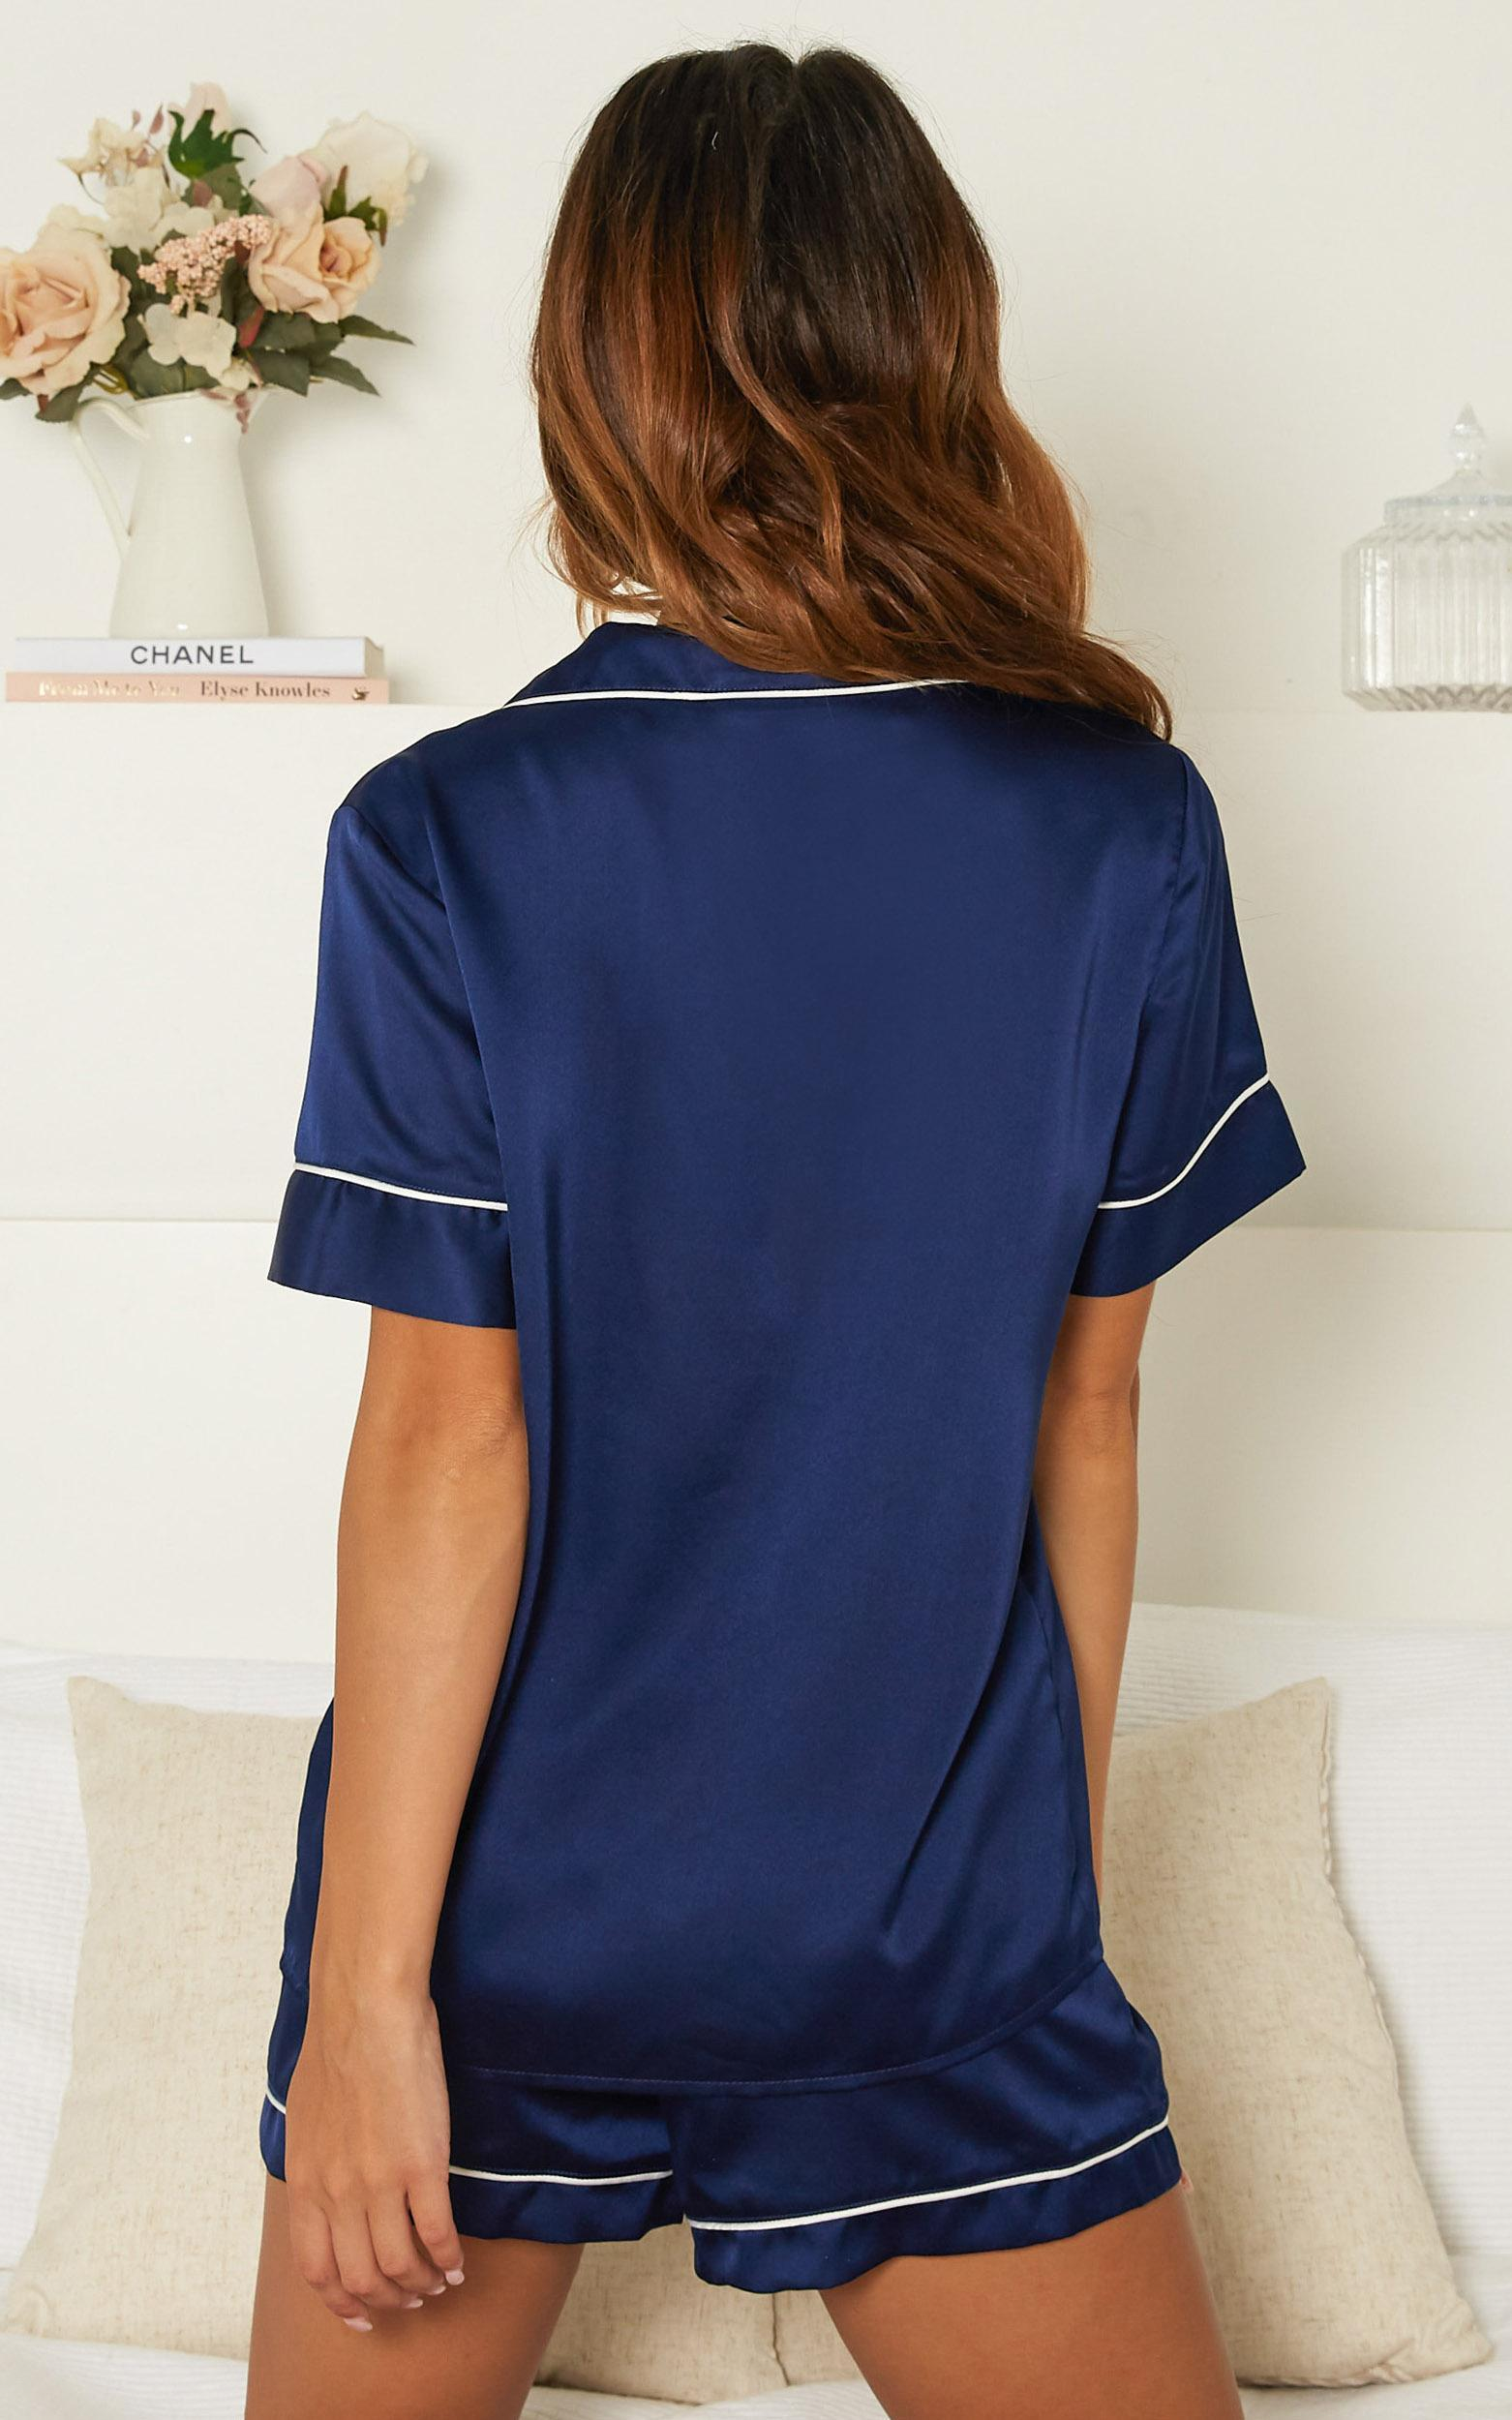 Sleep All Day Shorts in navy satin - 20 (XXXXL), Navy, hi-res image number null